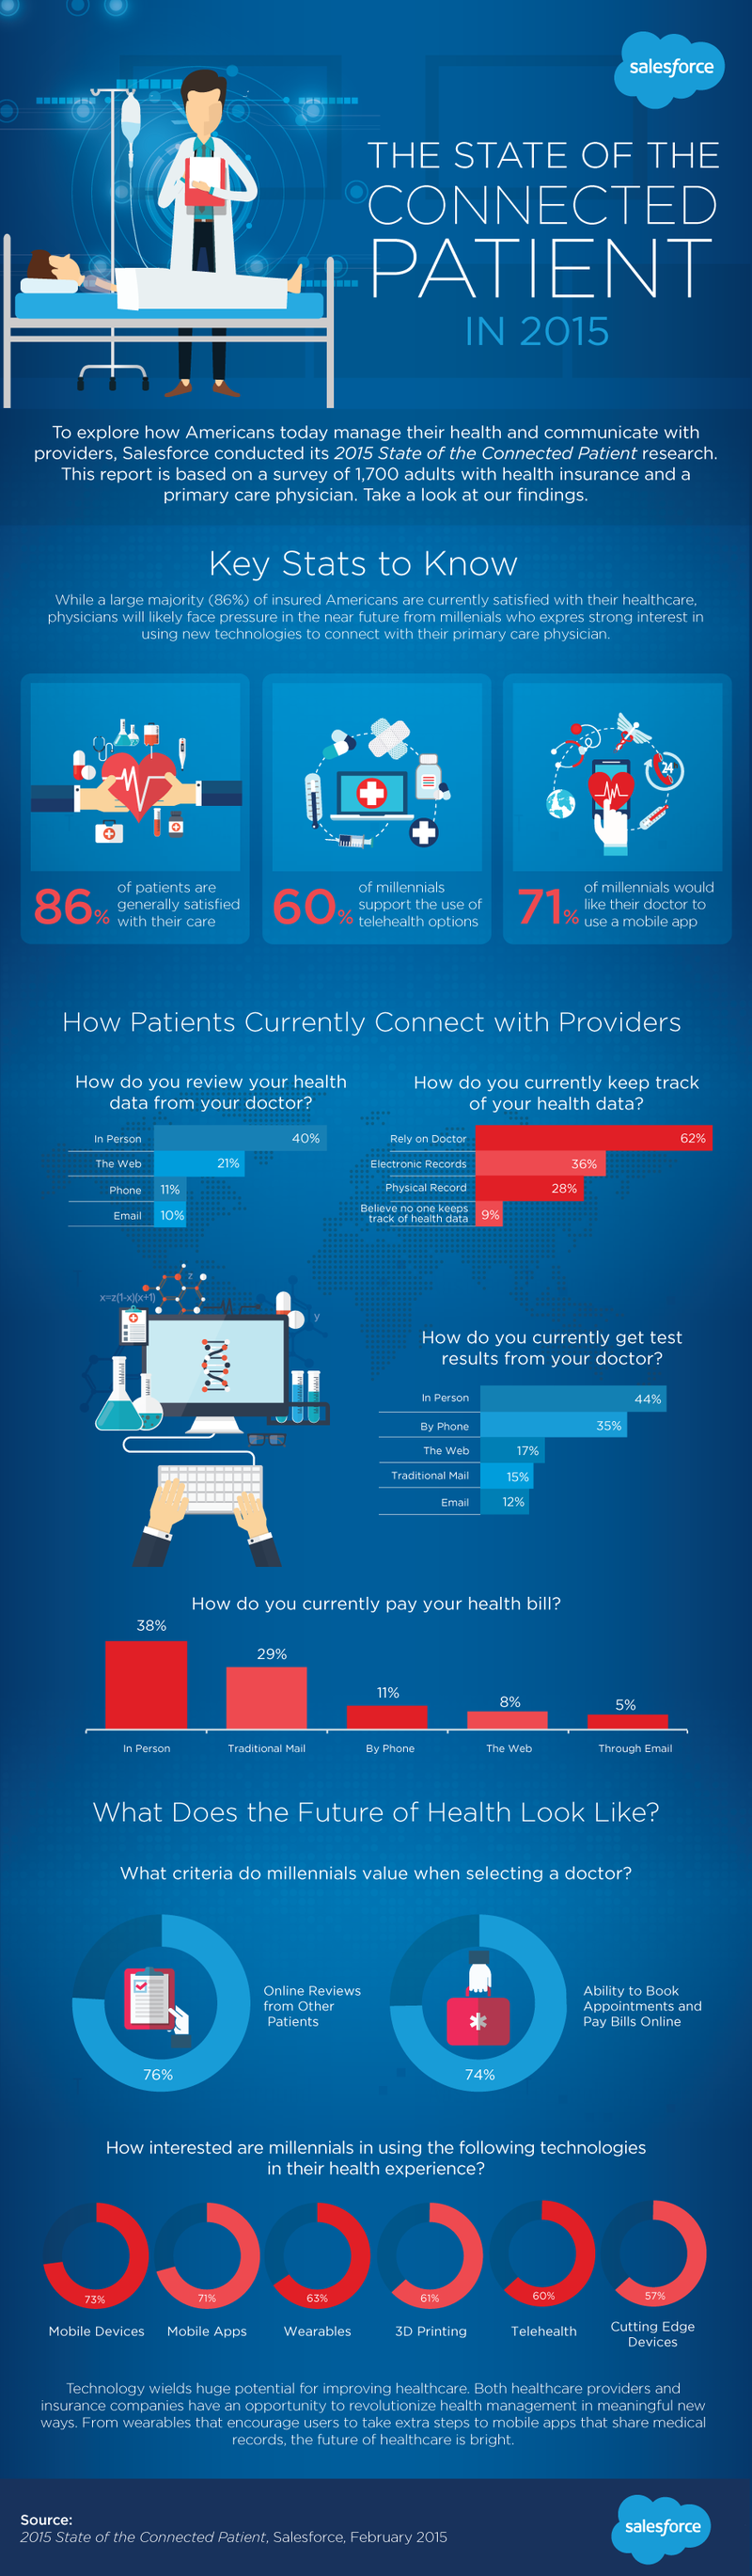 State Of Connected Patient 2015 #infographic #